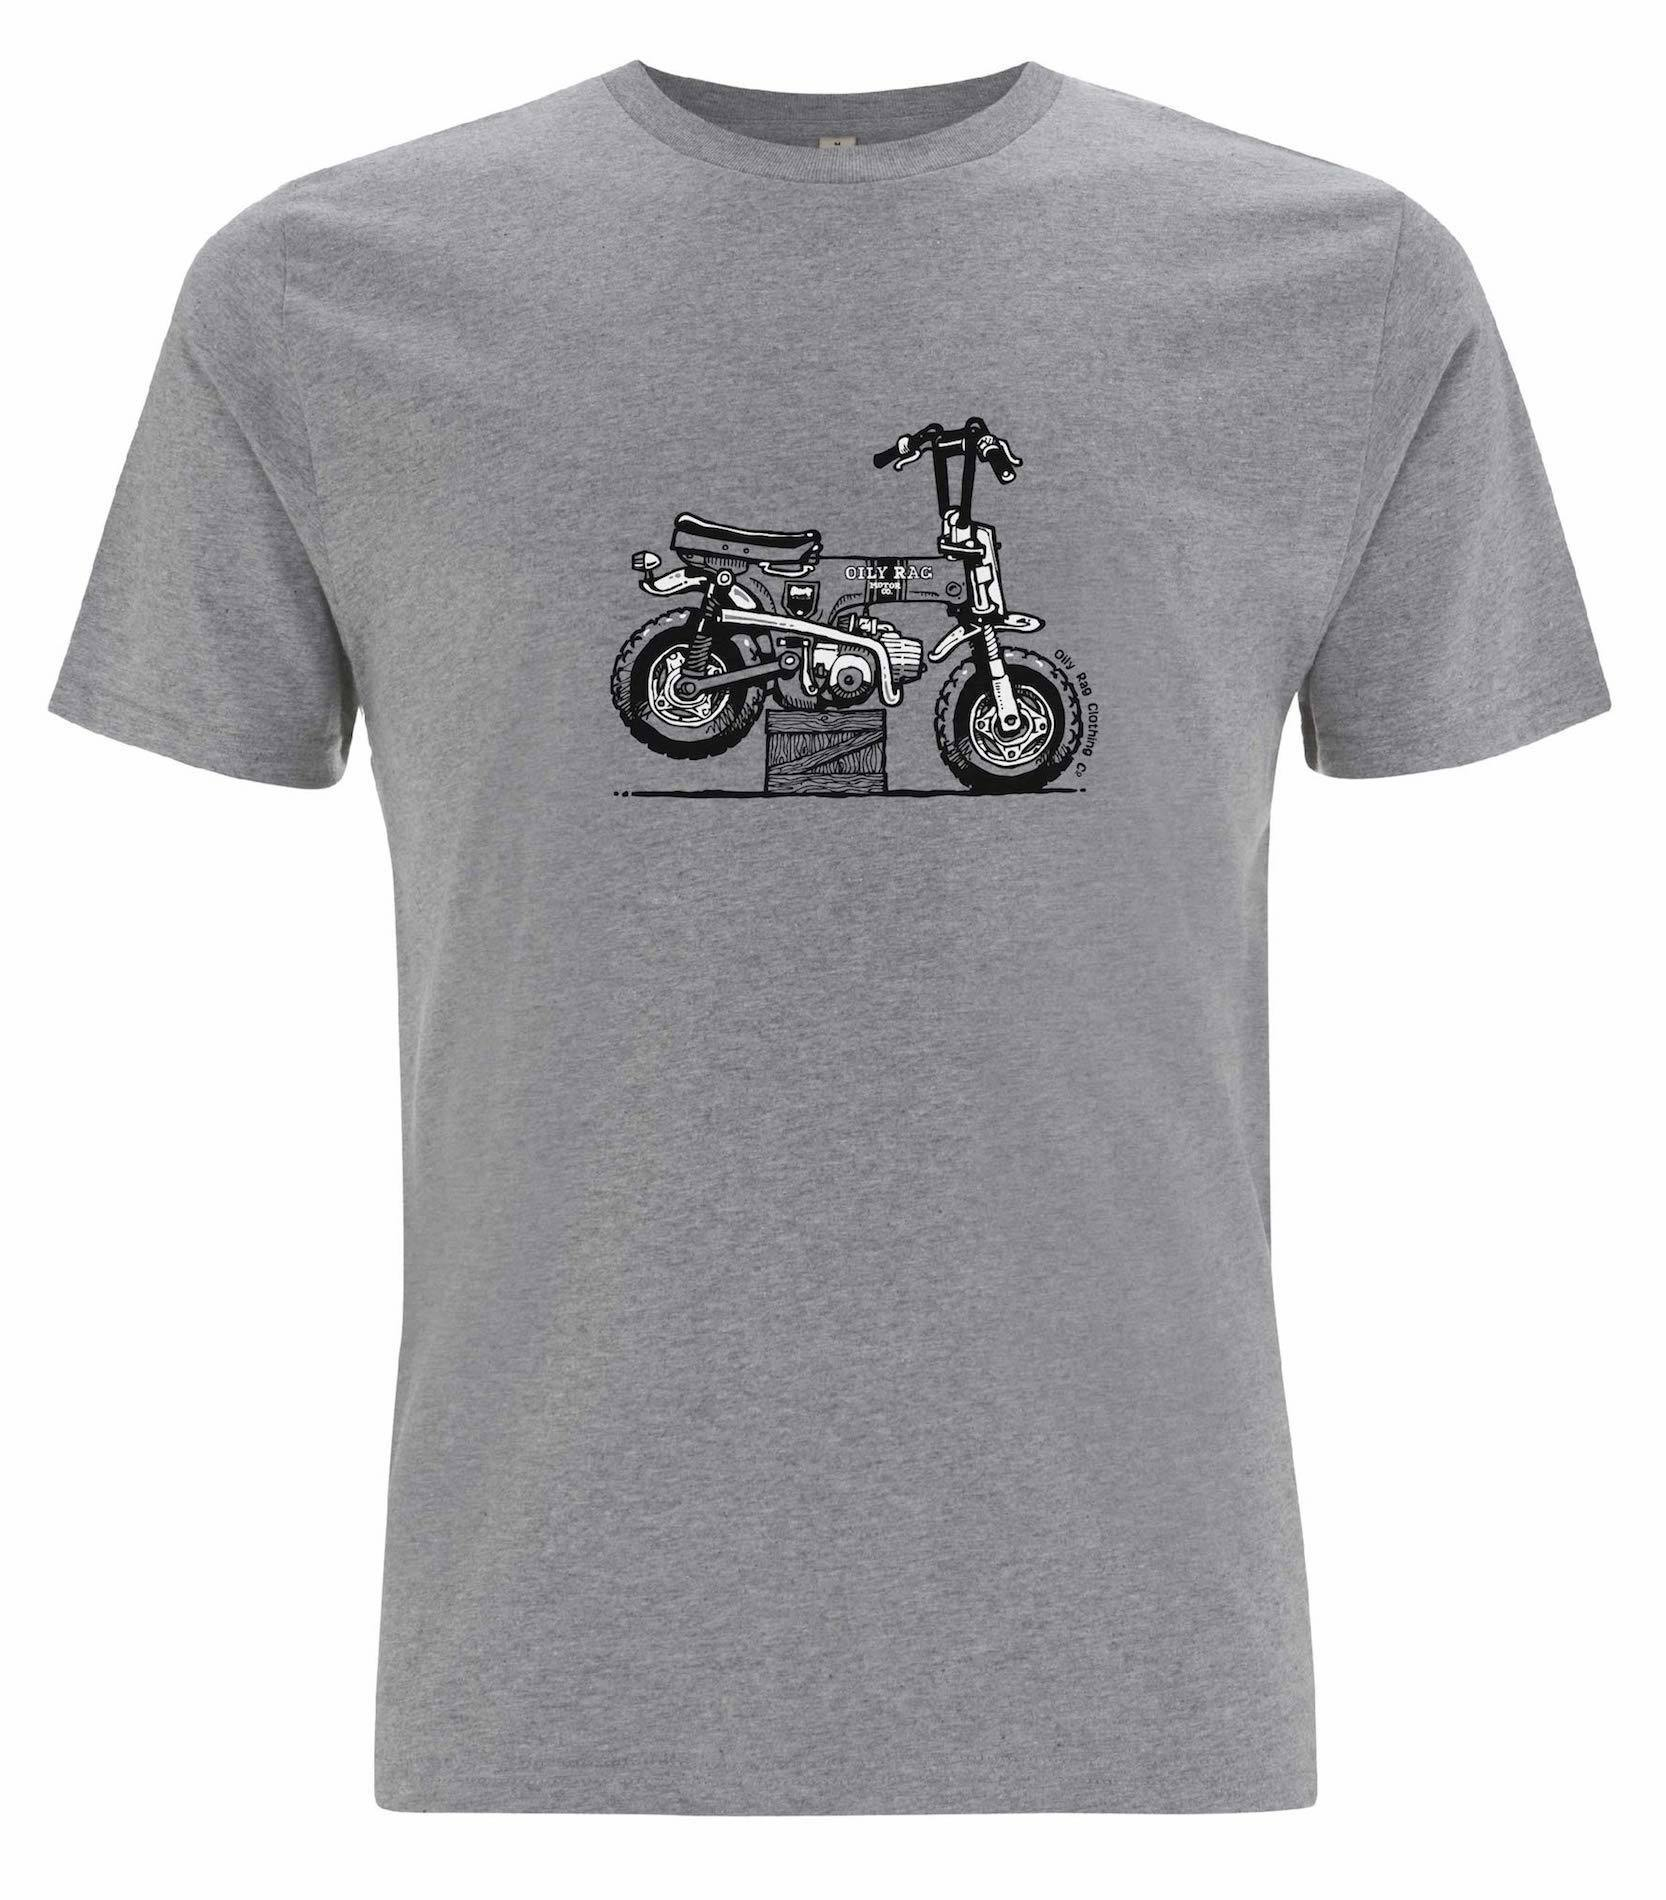 Oily Rag Clothing - Oily Rag Clothing Monkey Bike T'Shirt - T-Shirts - Salt Flats Clothing